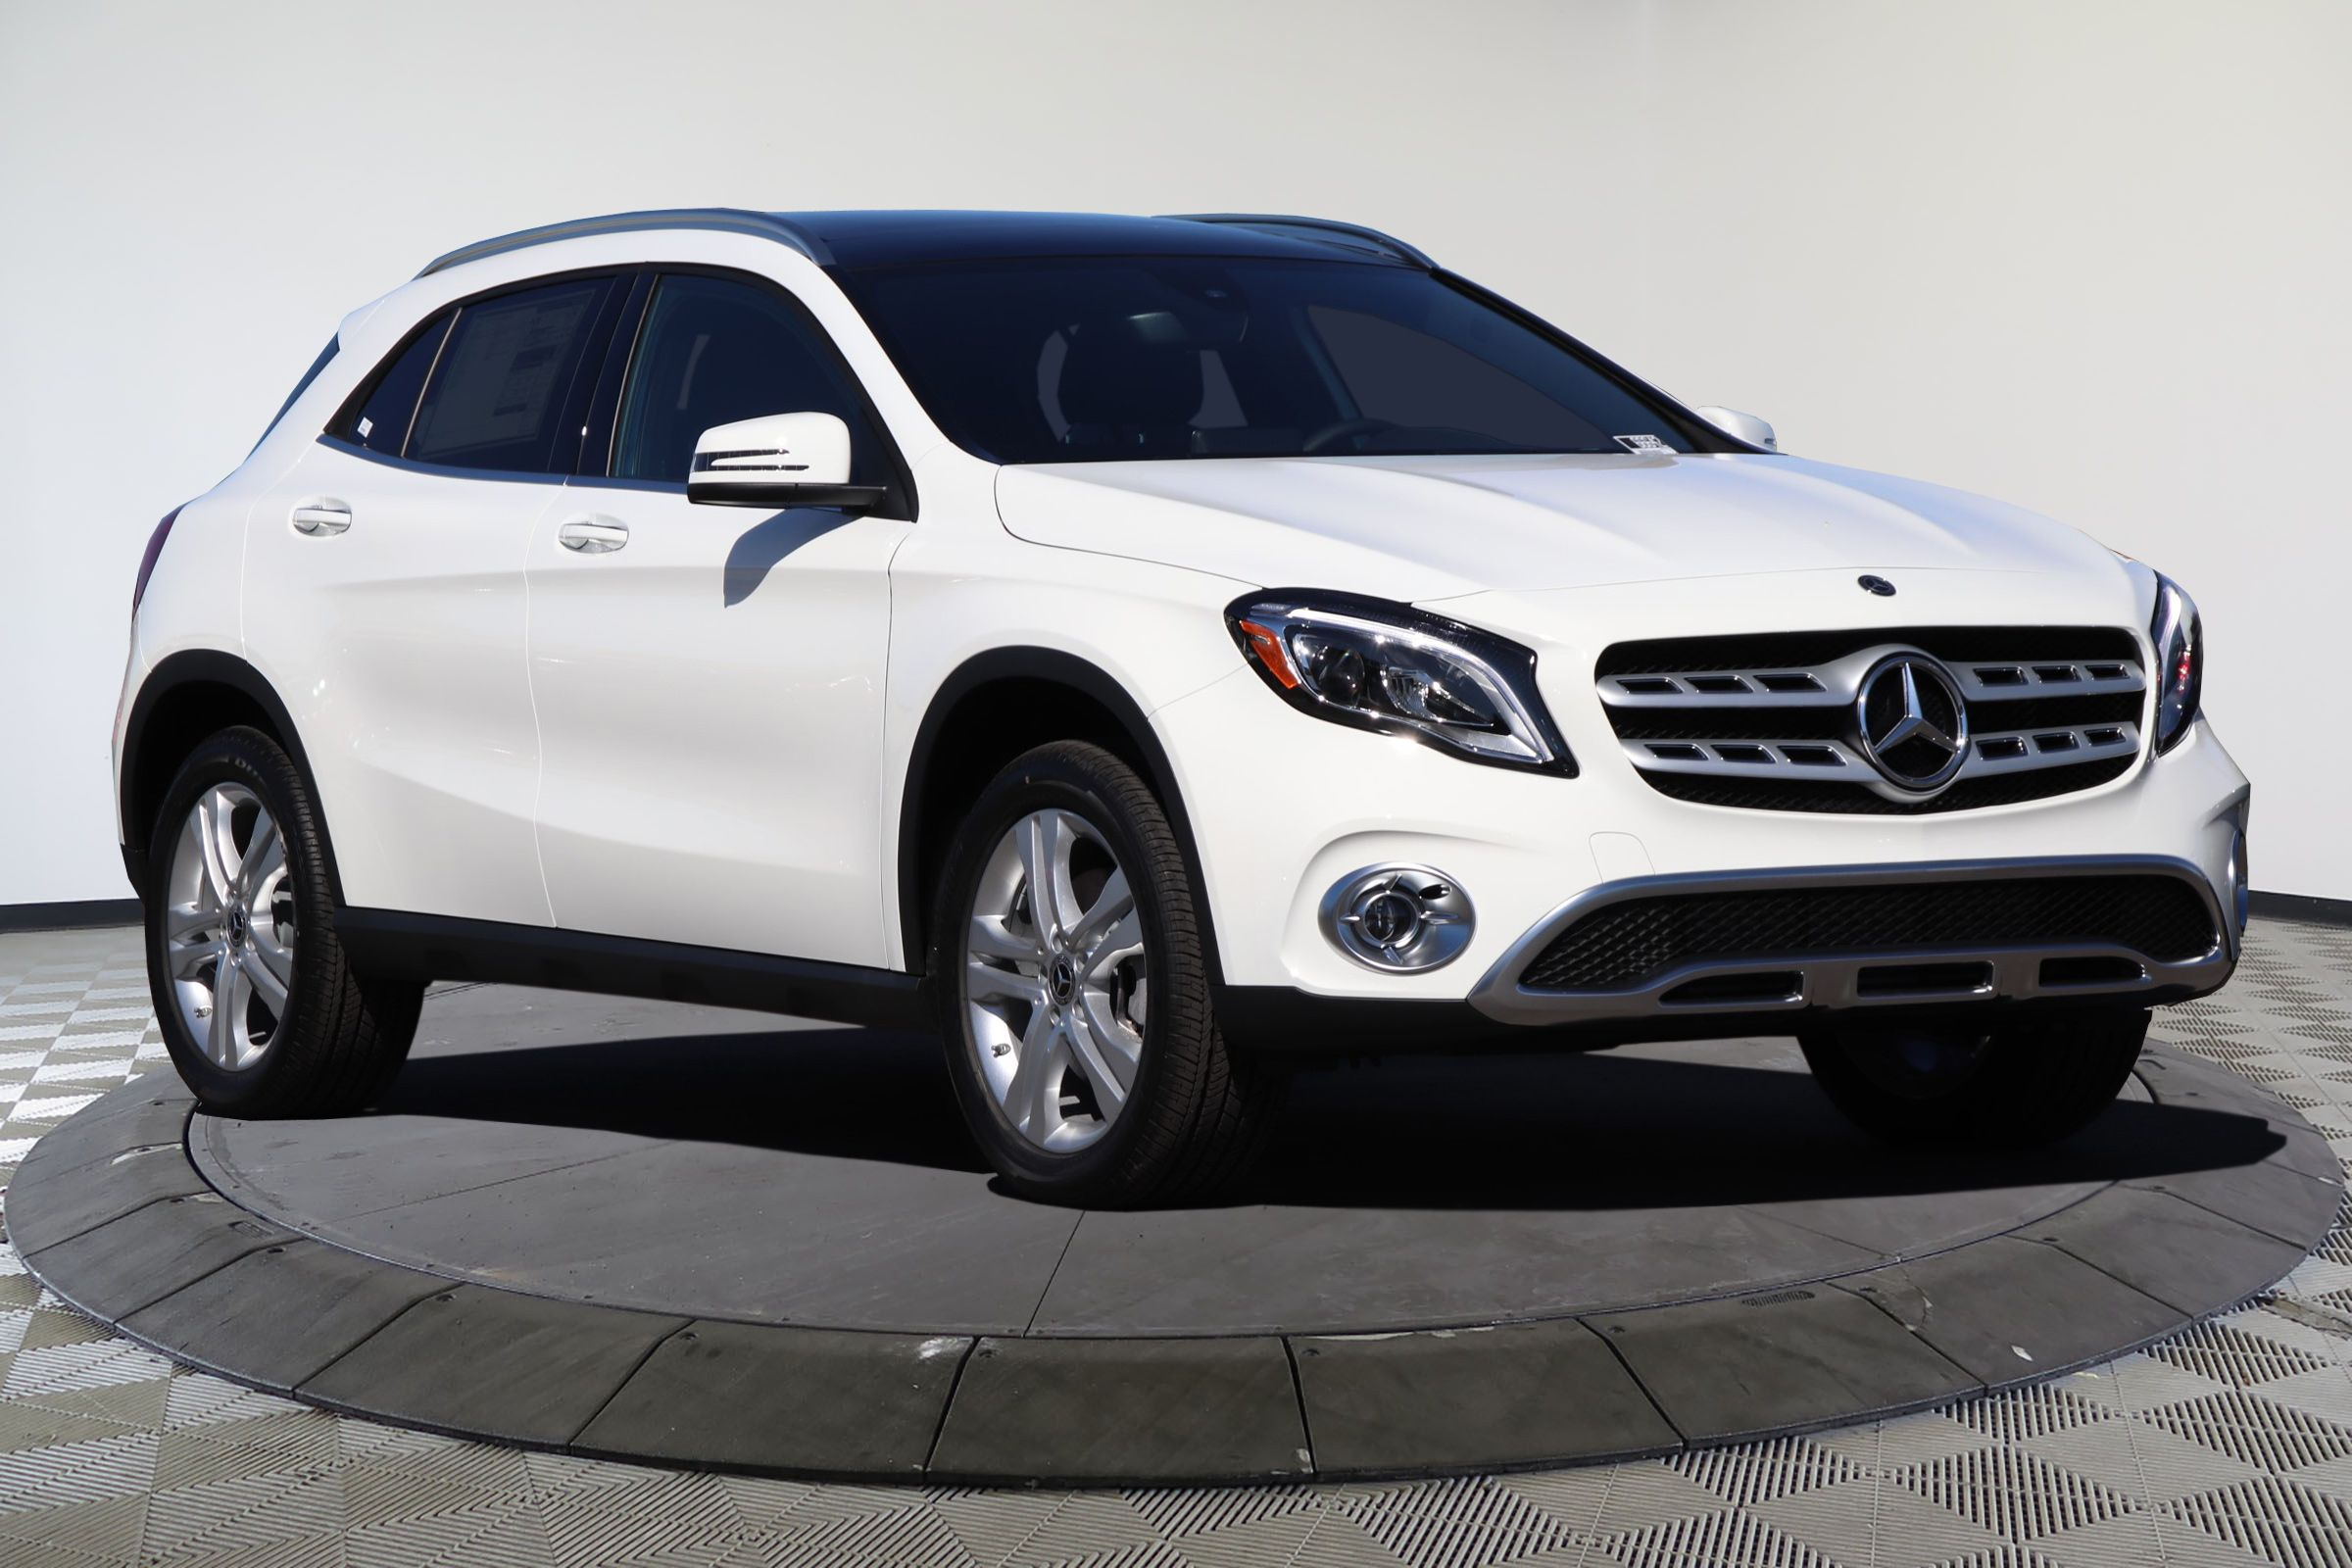 Pre Owned Vehicles For Sale In Fremont Mercedes Benz Suv